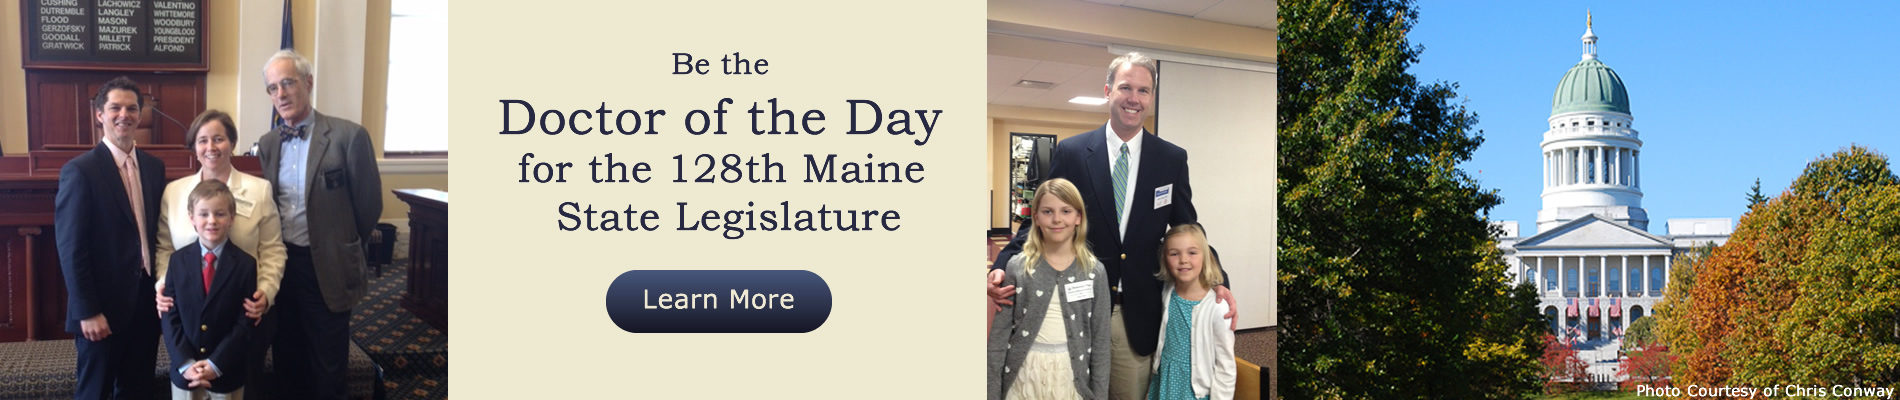 Be the Doctor of the Day for the 128th Maine State Legislature.